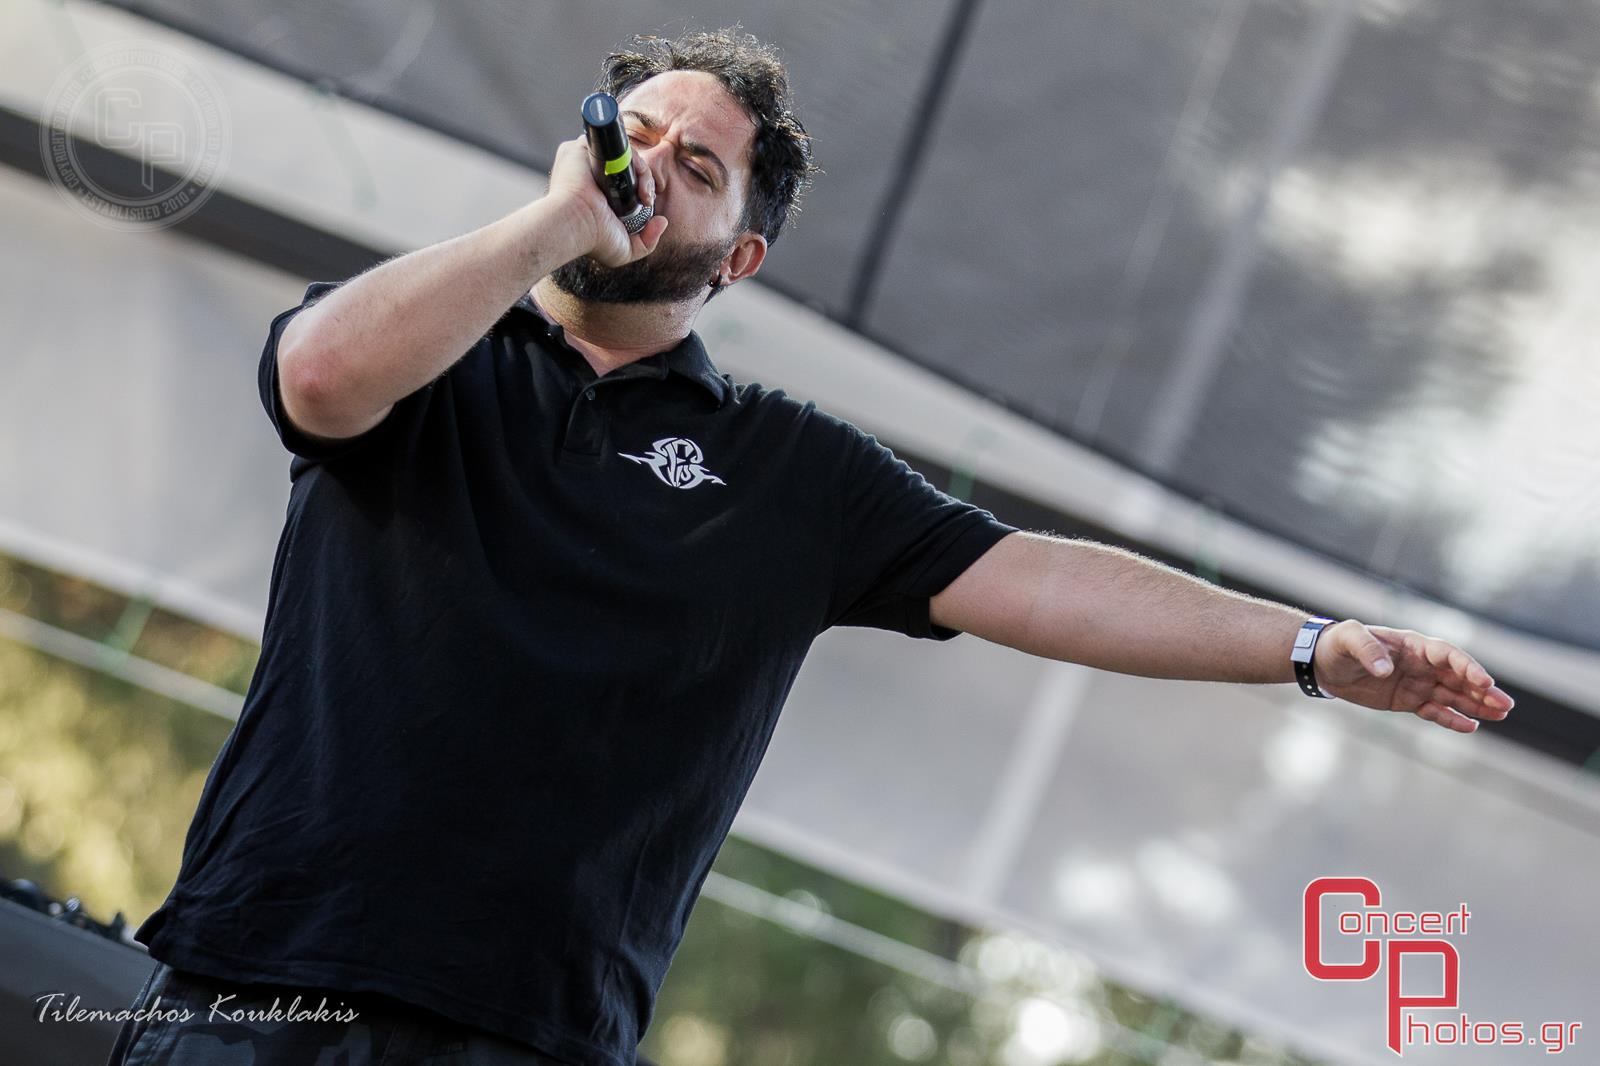 Rockwave 2014-Rockwave 2014 - Day 1 photographer:  - Rockwave-2014-50